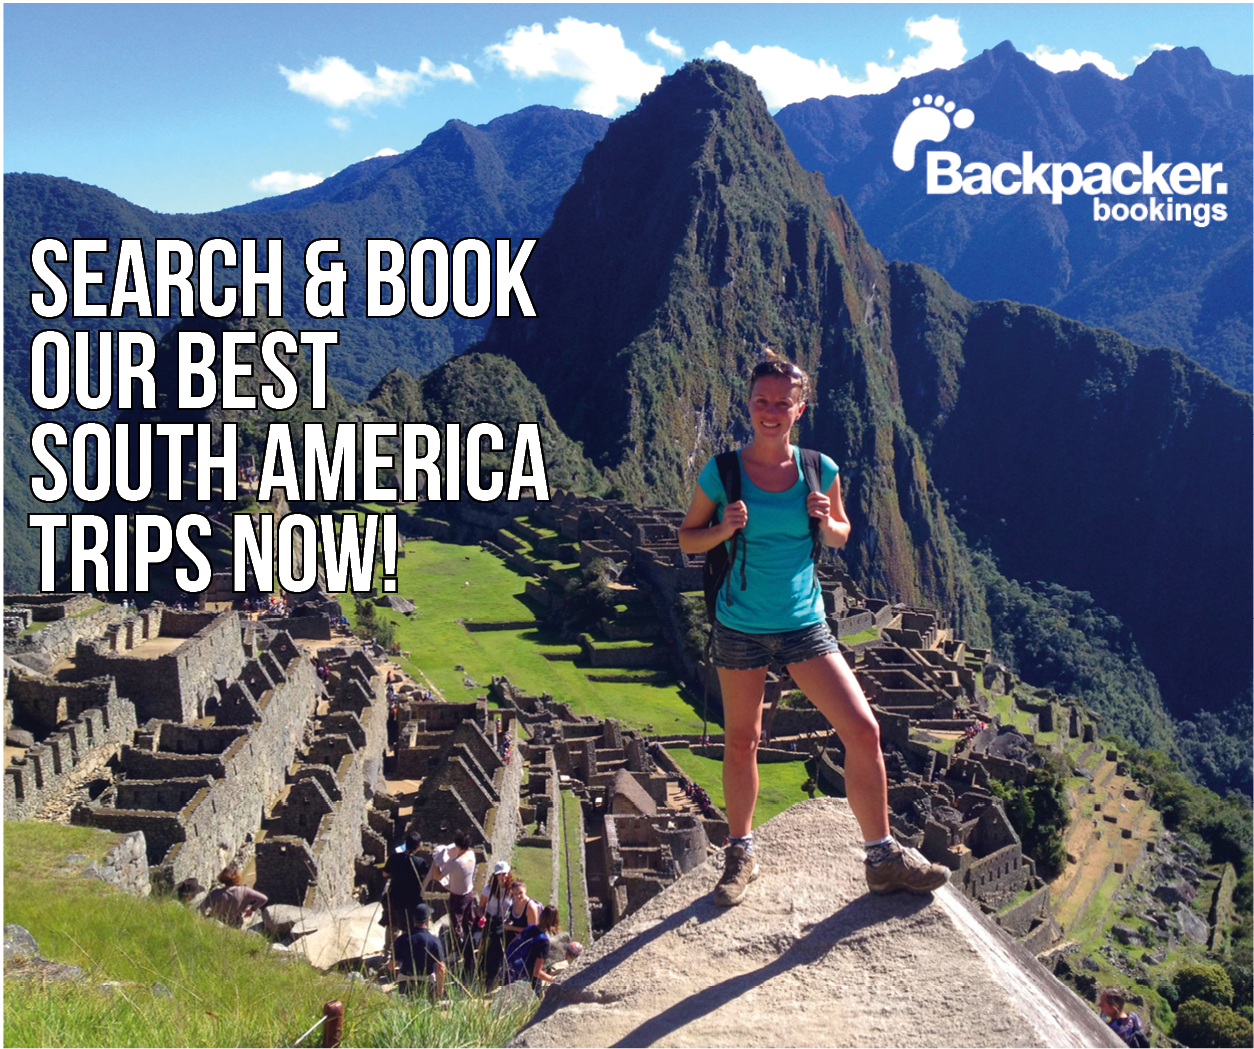 South America Backpacker Com Future South America Trip - Best south american vacations